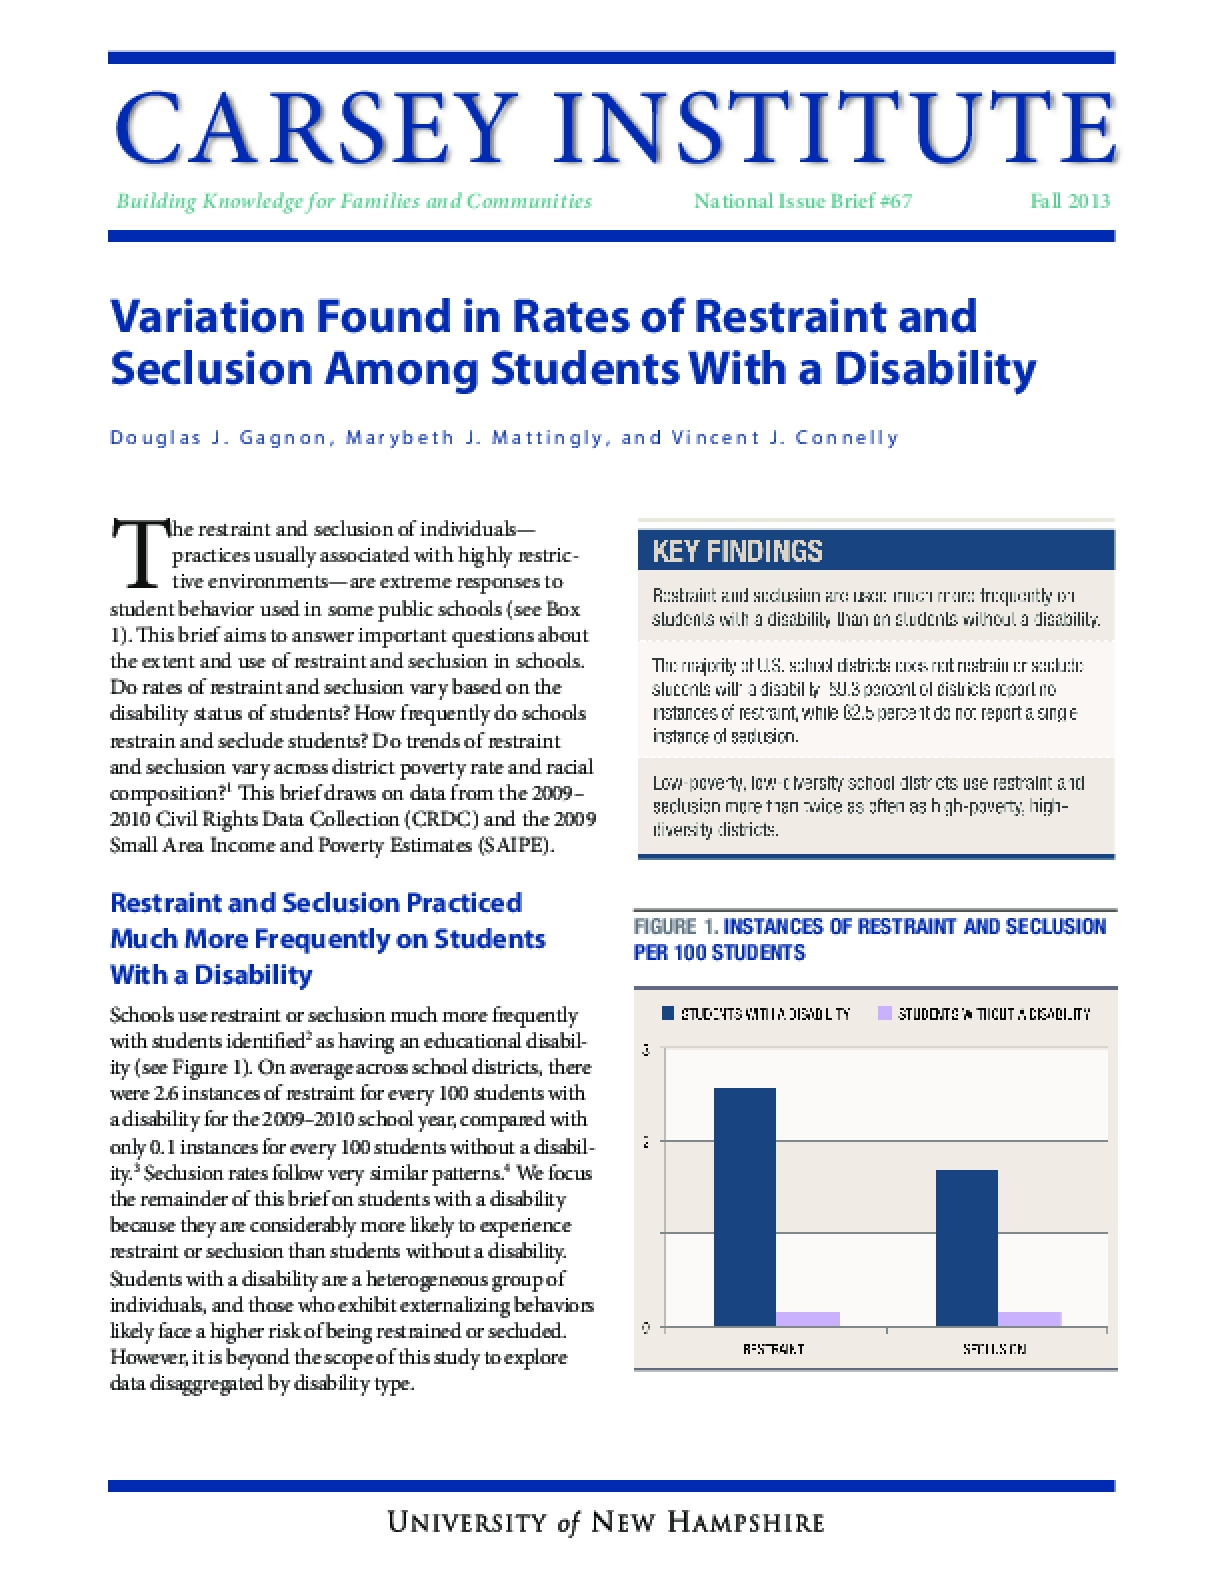 Variation Found in Rates of Restraint and Seclusion Among Students With a Disability